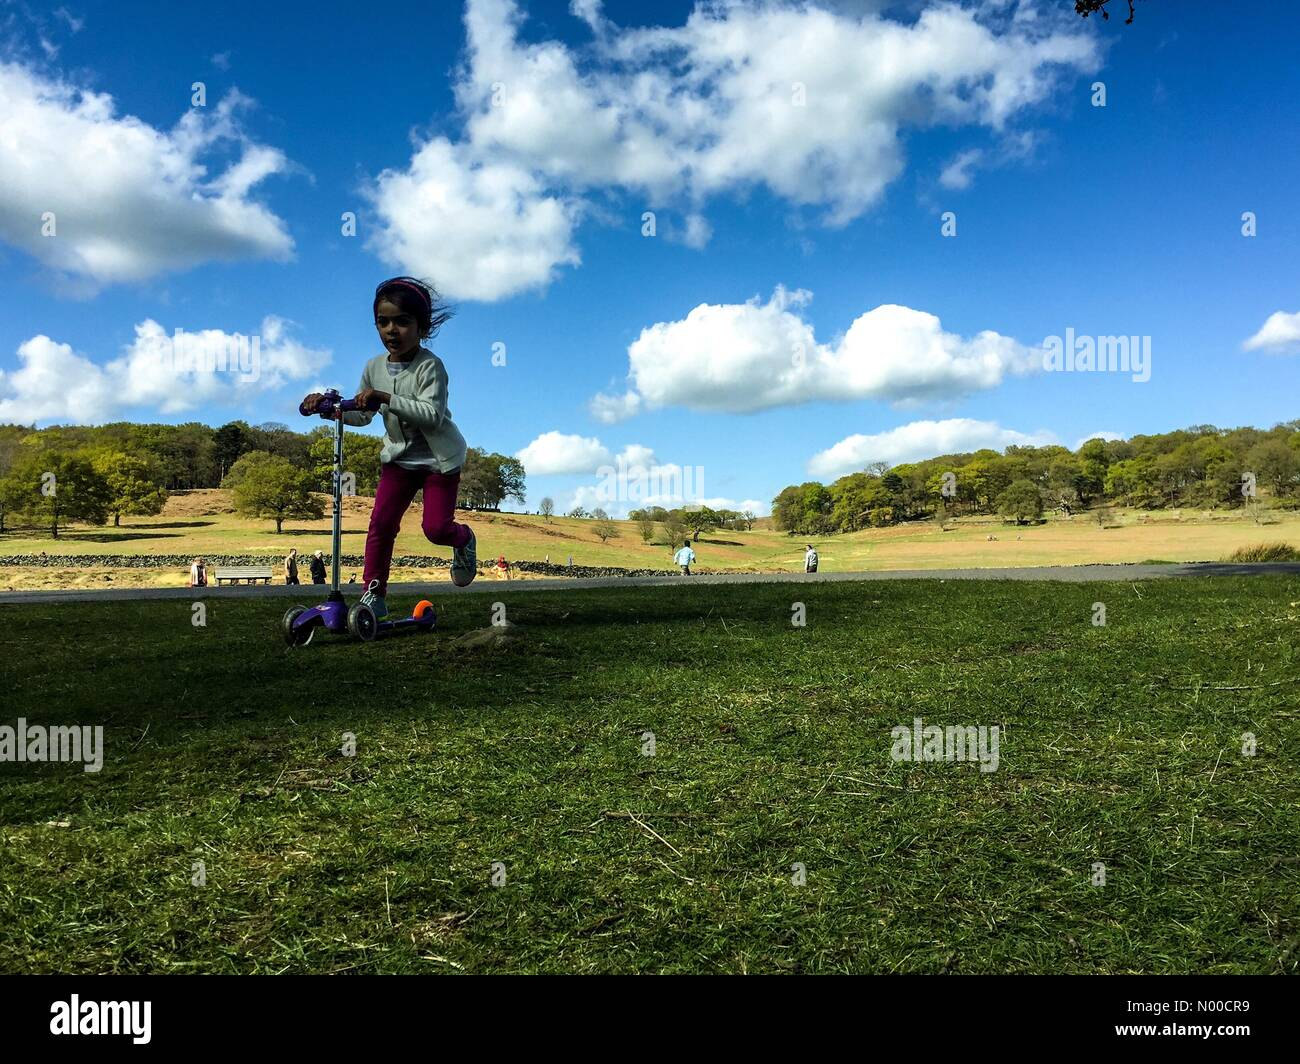 15th April 2017, 1500 hrs. Leicester, UK. Children playing outdoors under a blue sky despite forecasts of a cloudy - Stock Image